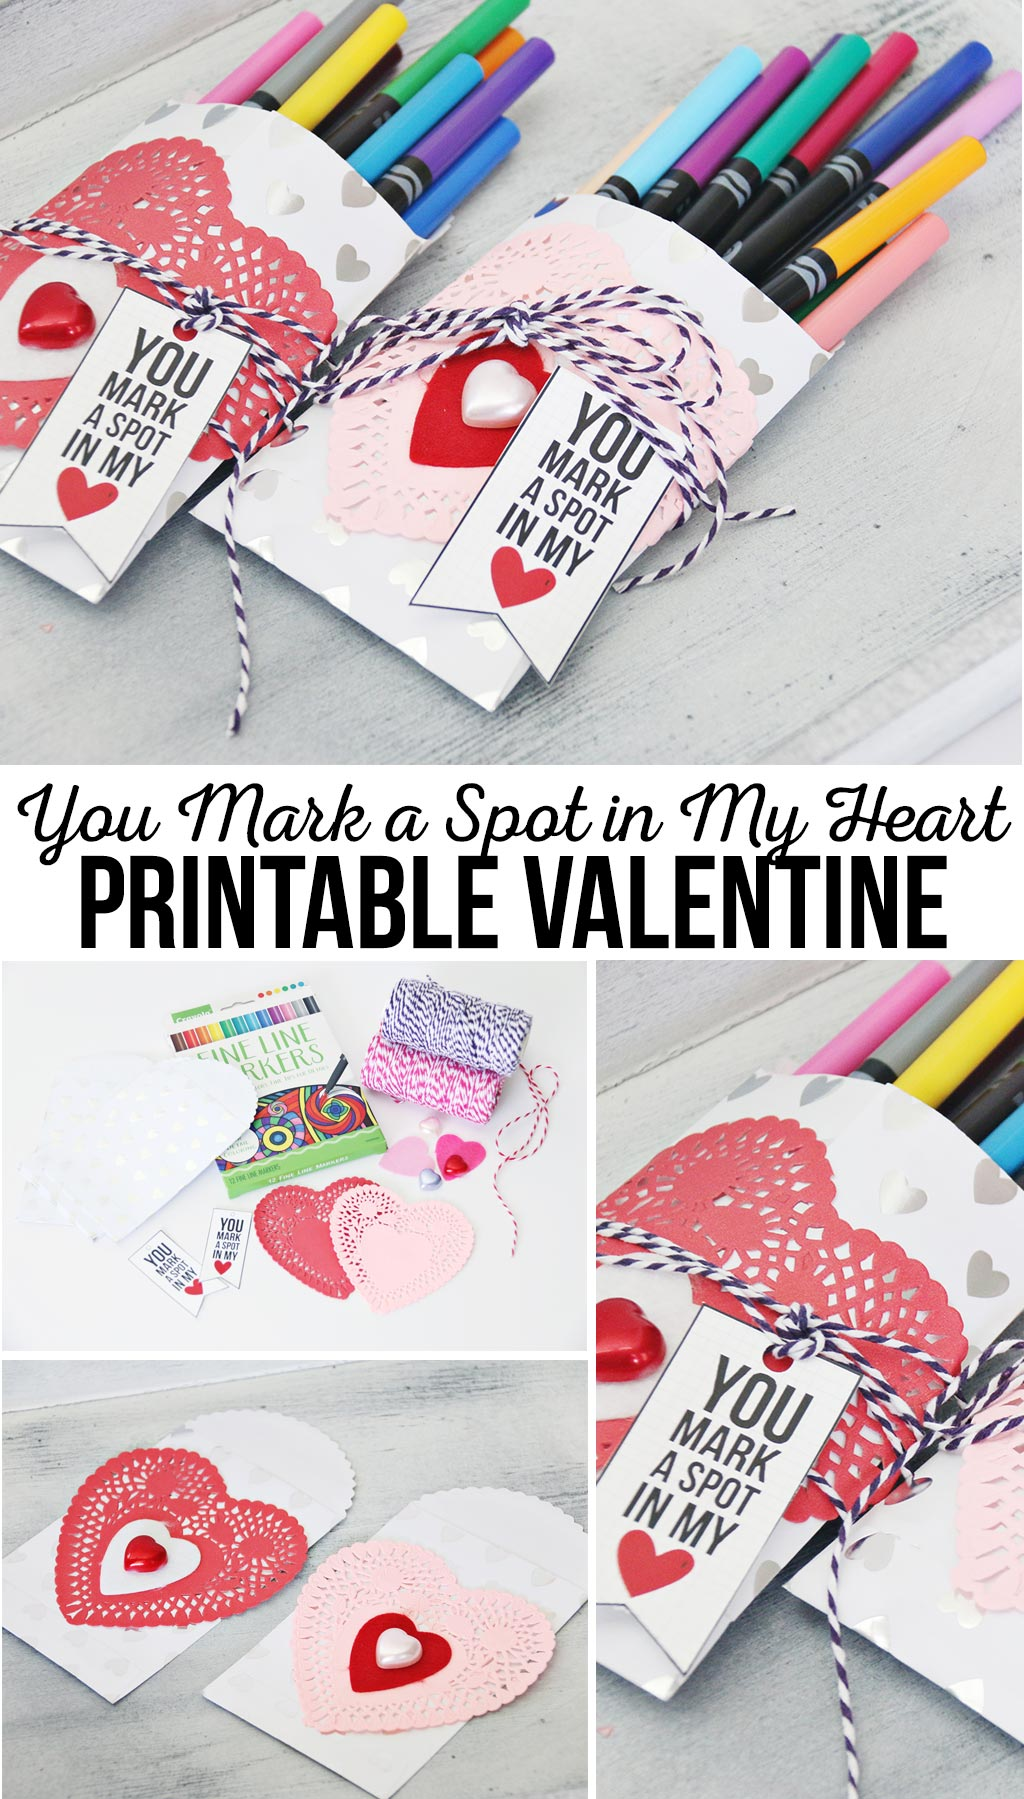 You Mark a Spot in my Heart Printable Valentine